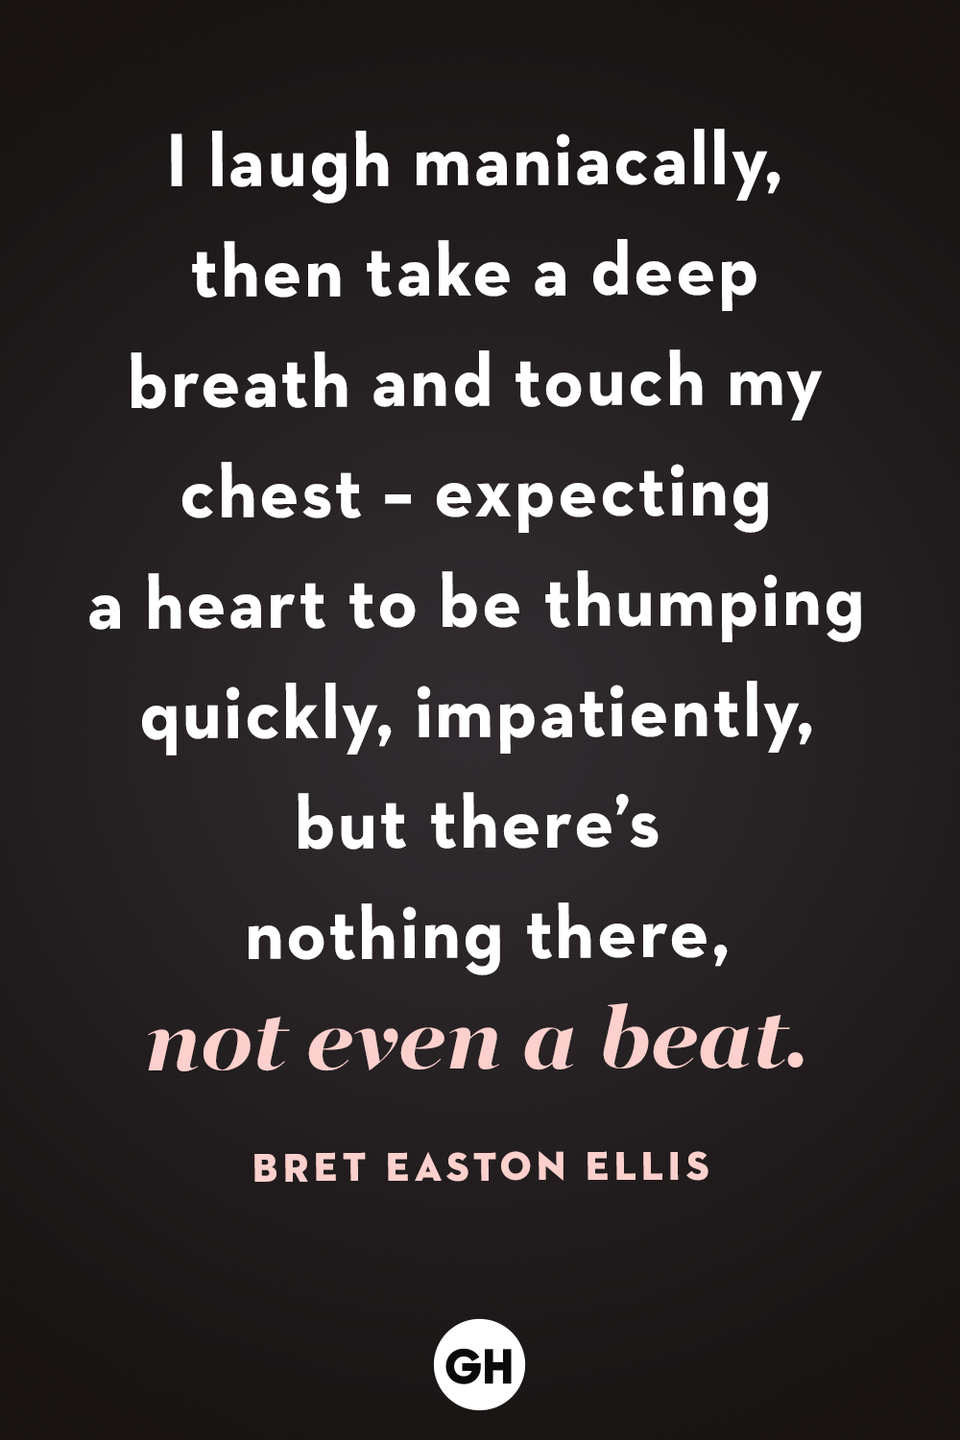 """<p>""""I laugh maniacally, then take a deep breath and touch my chest – expecting a heart to be thumping quickly, impatiently, but there's nothing there, not even a beat.""""</p>"""